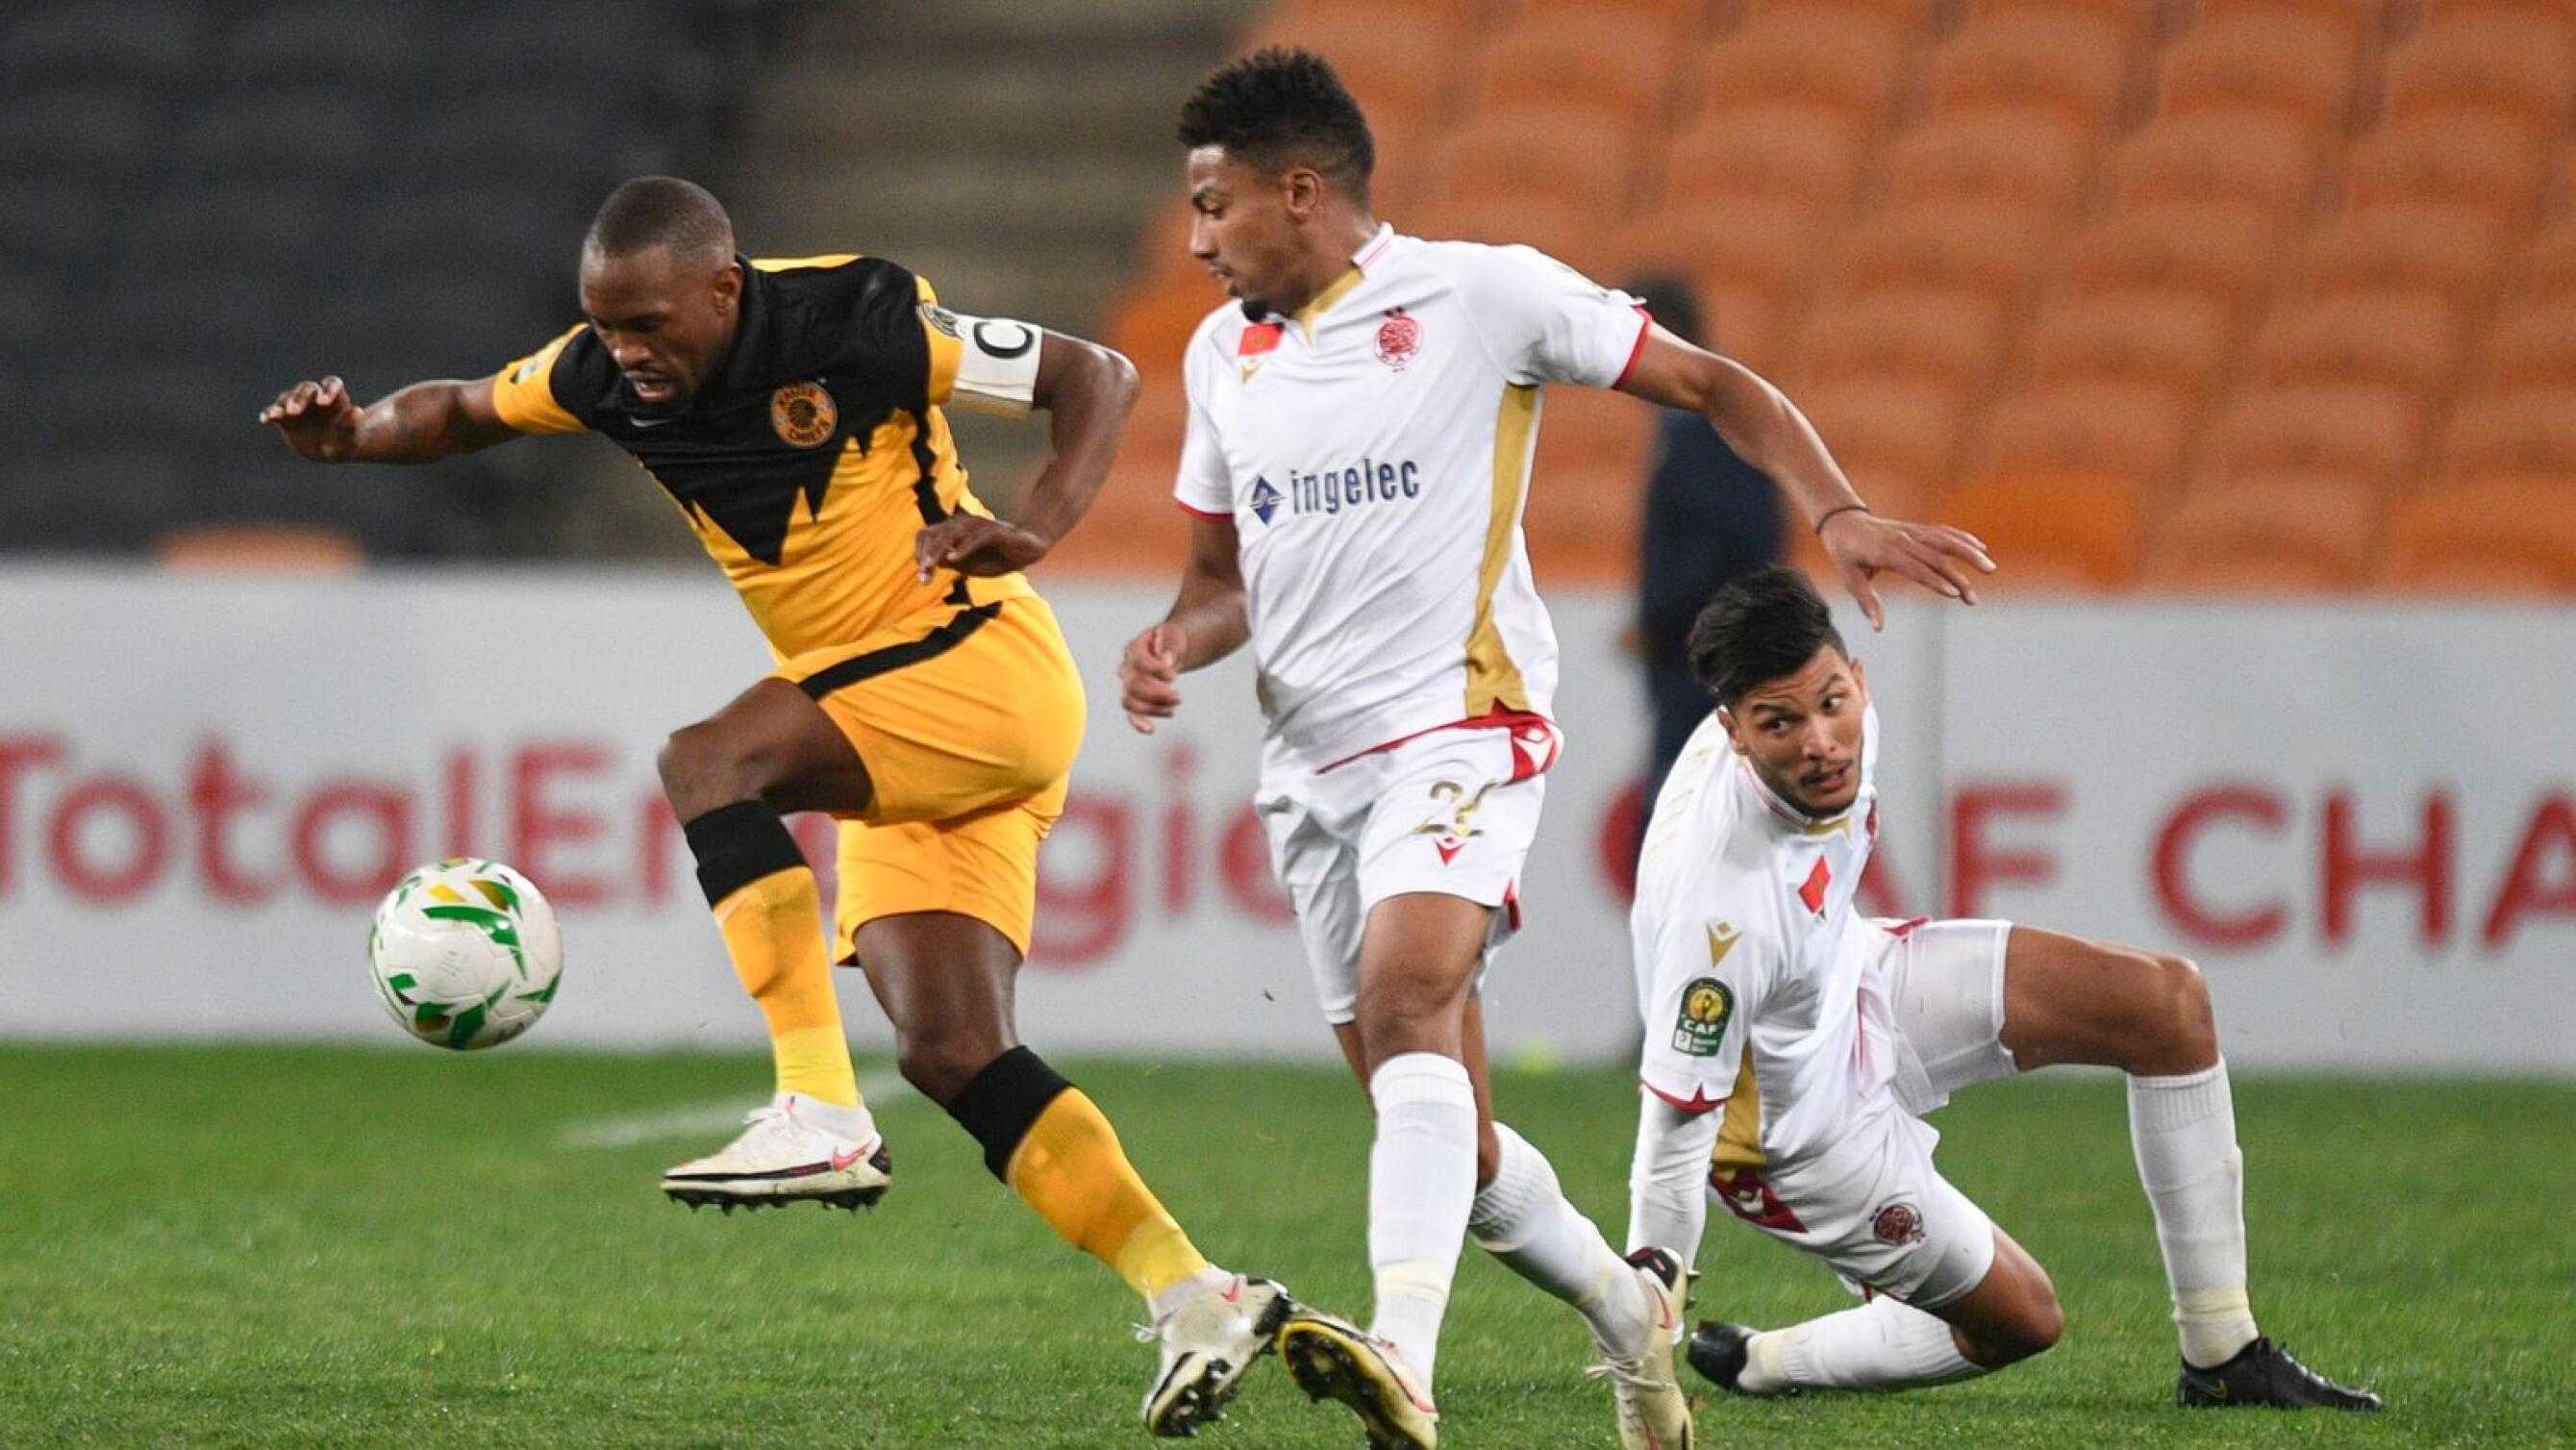 Bernard Parker of Kaizer Chiefs is challenged by Ayoub El Amloud of Wydad Casablanca during their Caf Champions League semi final second Leg match at FNB Stadium in Soweto, Johannesburg on Saturday